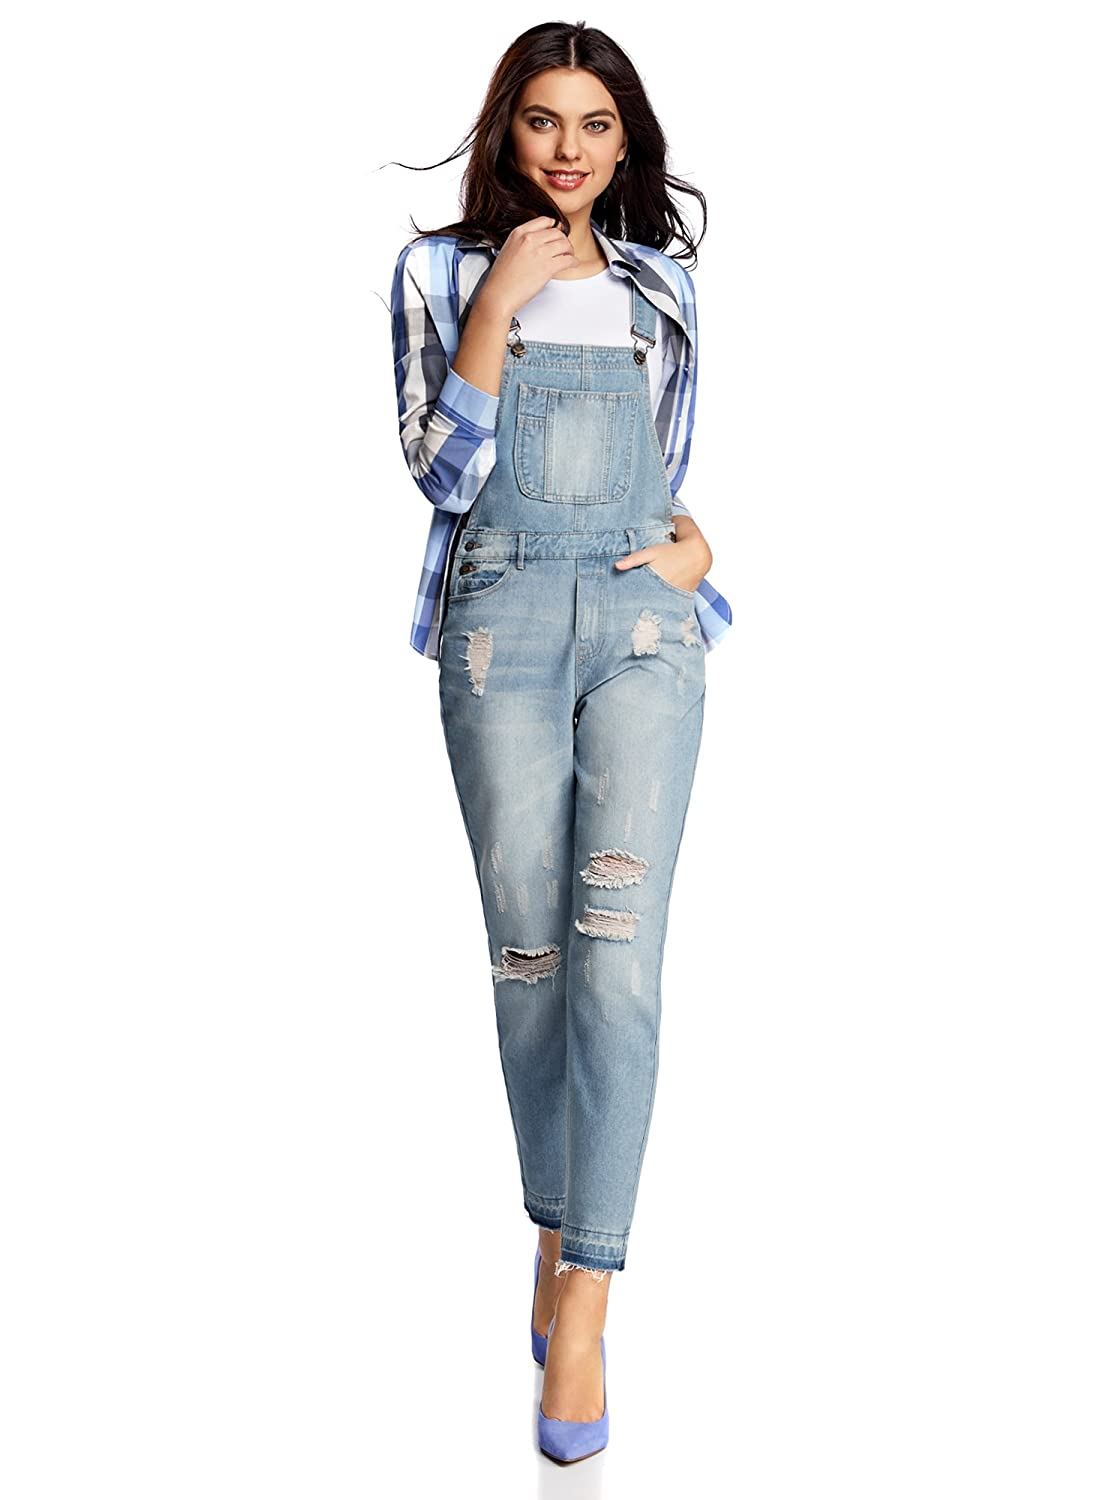 oodji Ultra Women's Denim Dungaree with Decorative Distressed Details RIFICZECH s.r.o. 13108002